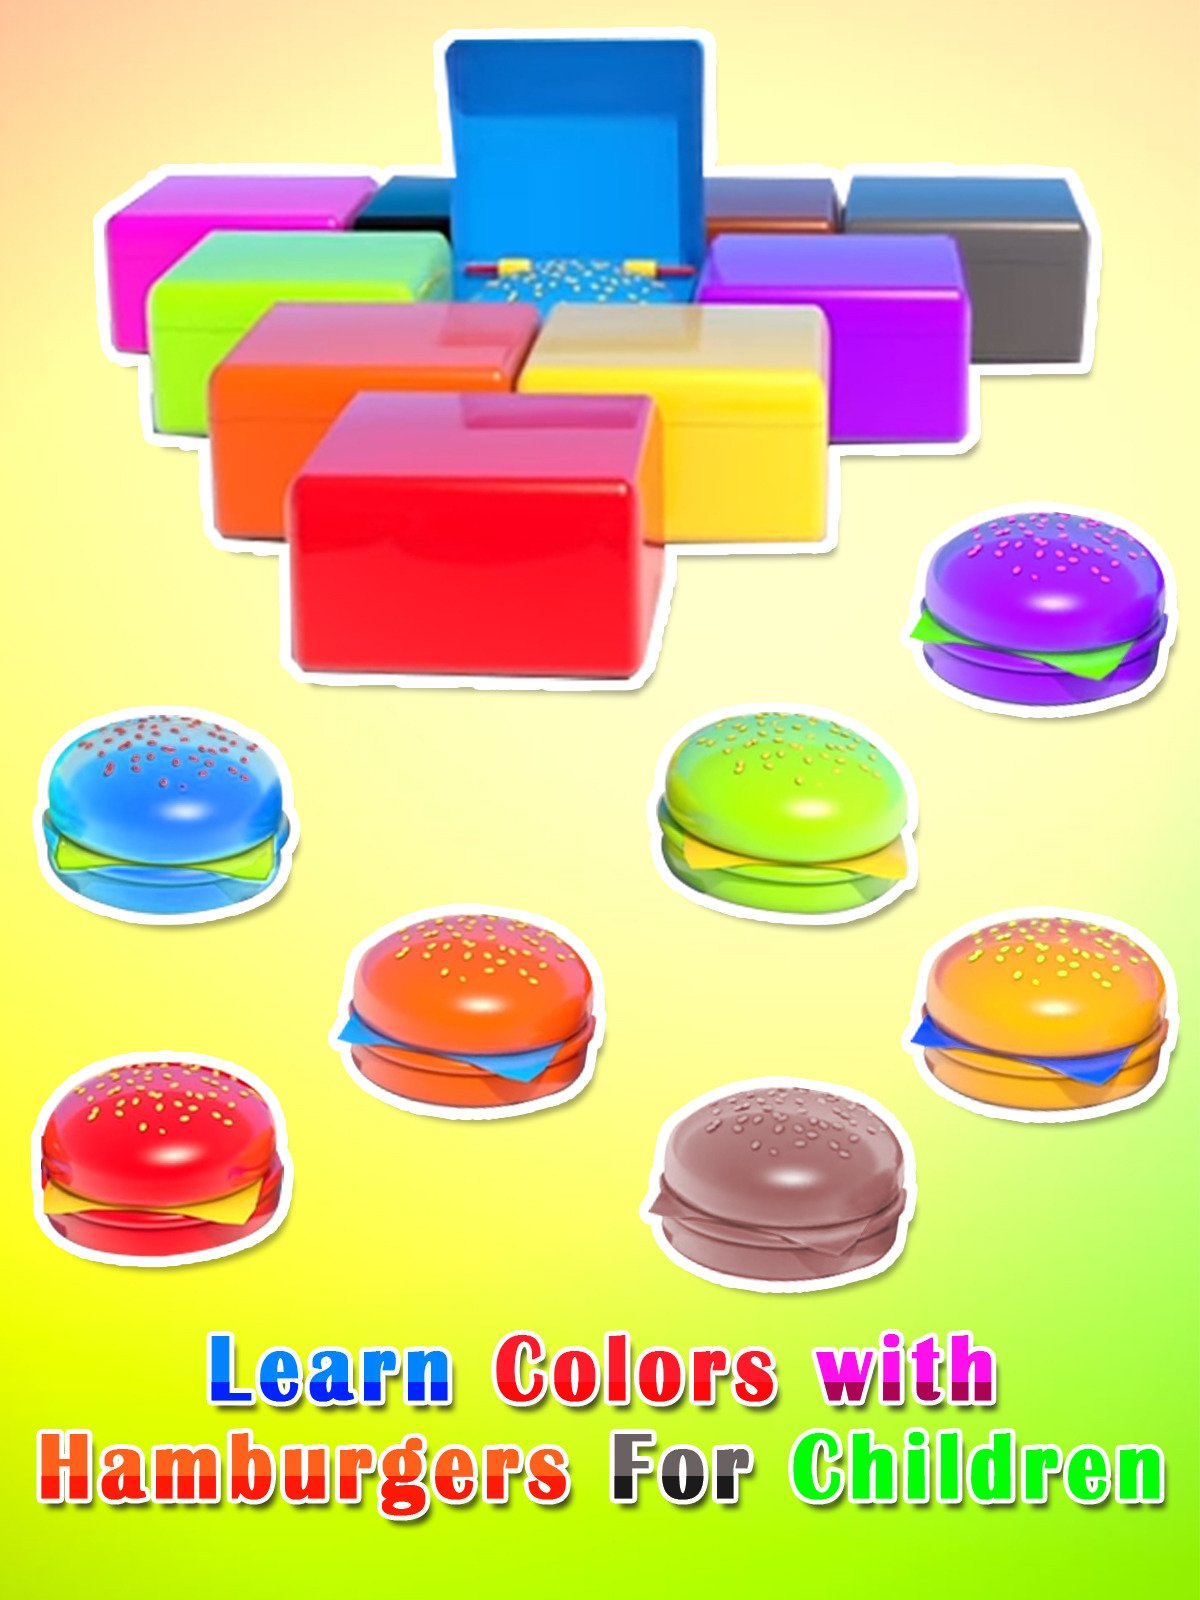 Learn Colors with Hamburgers For Children